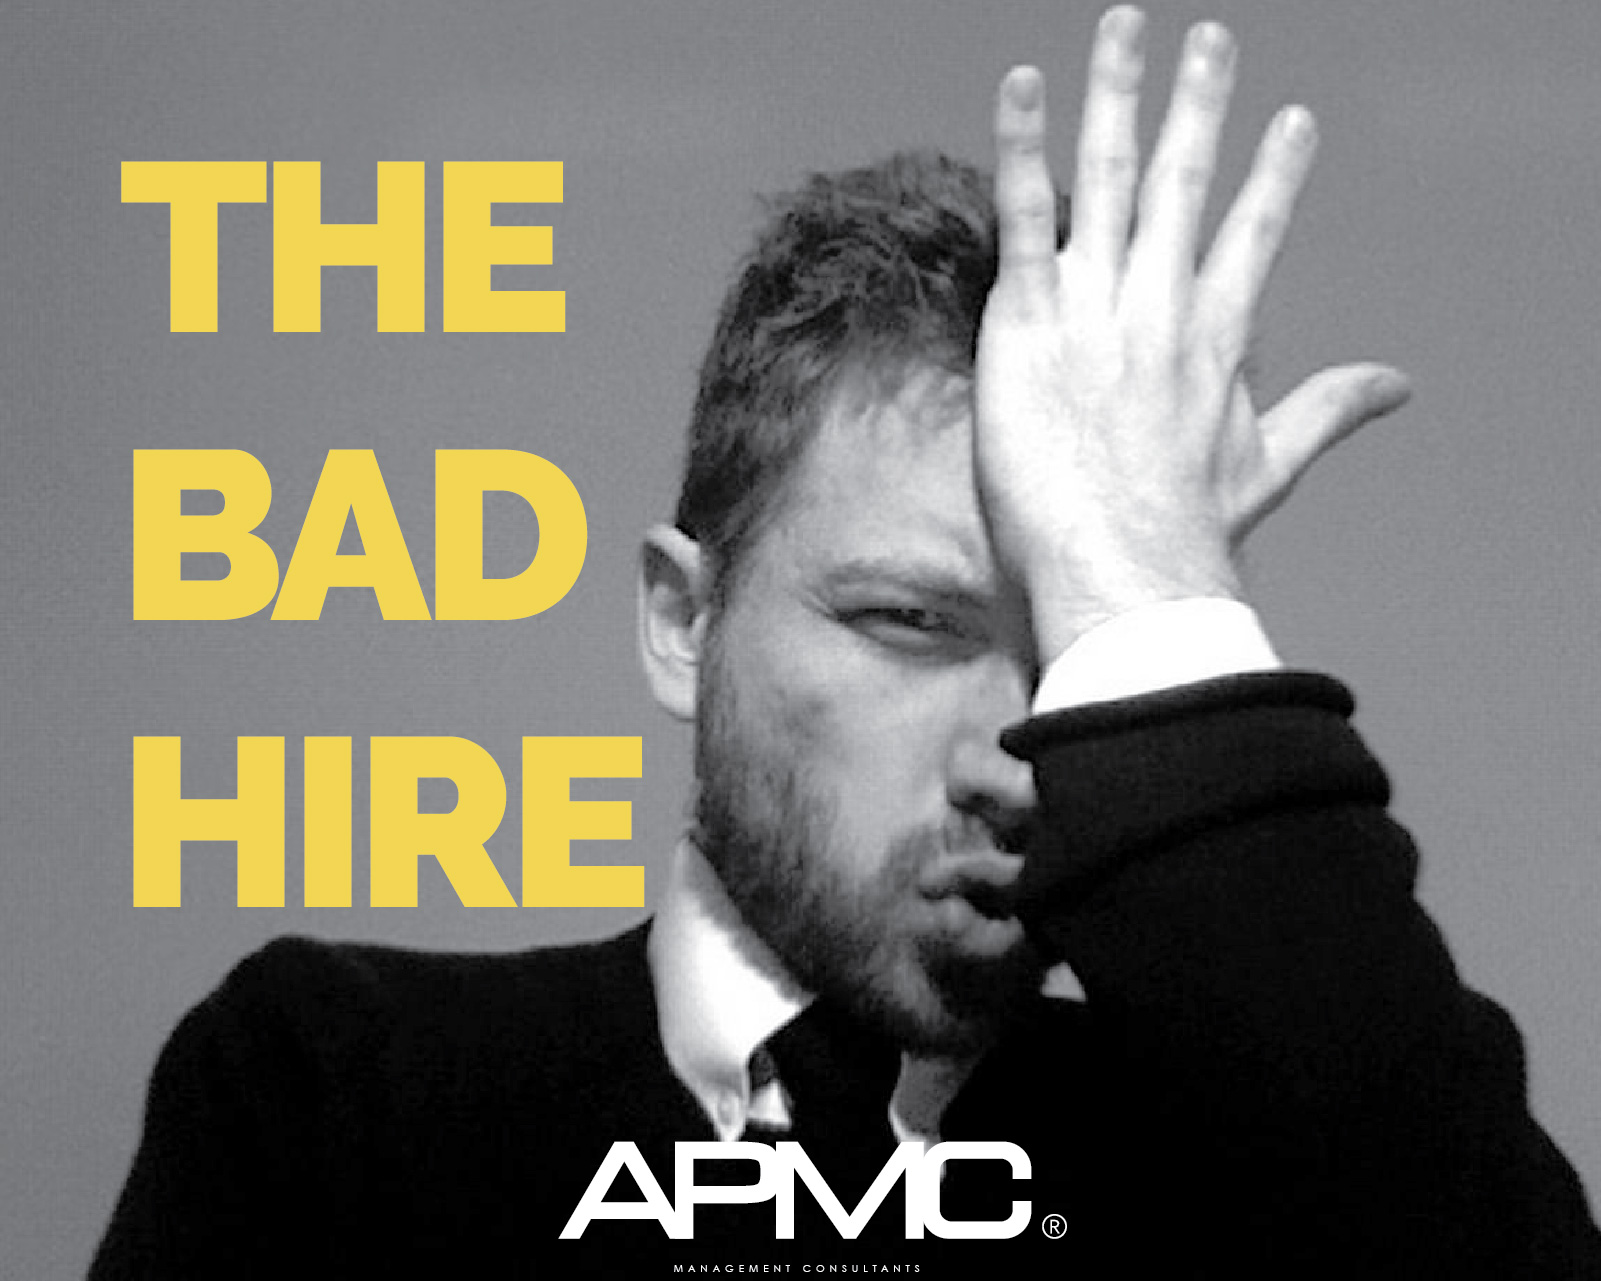 THE BAD HIRE: An Expensive Mistake